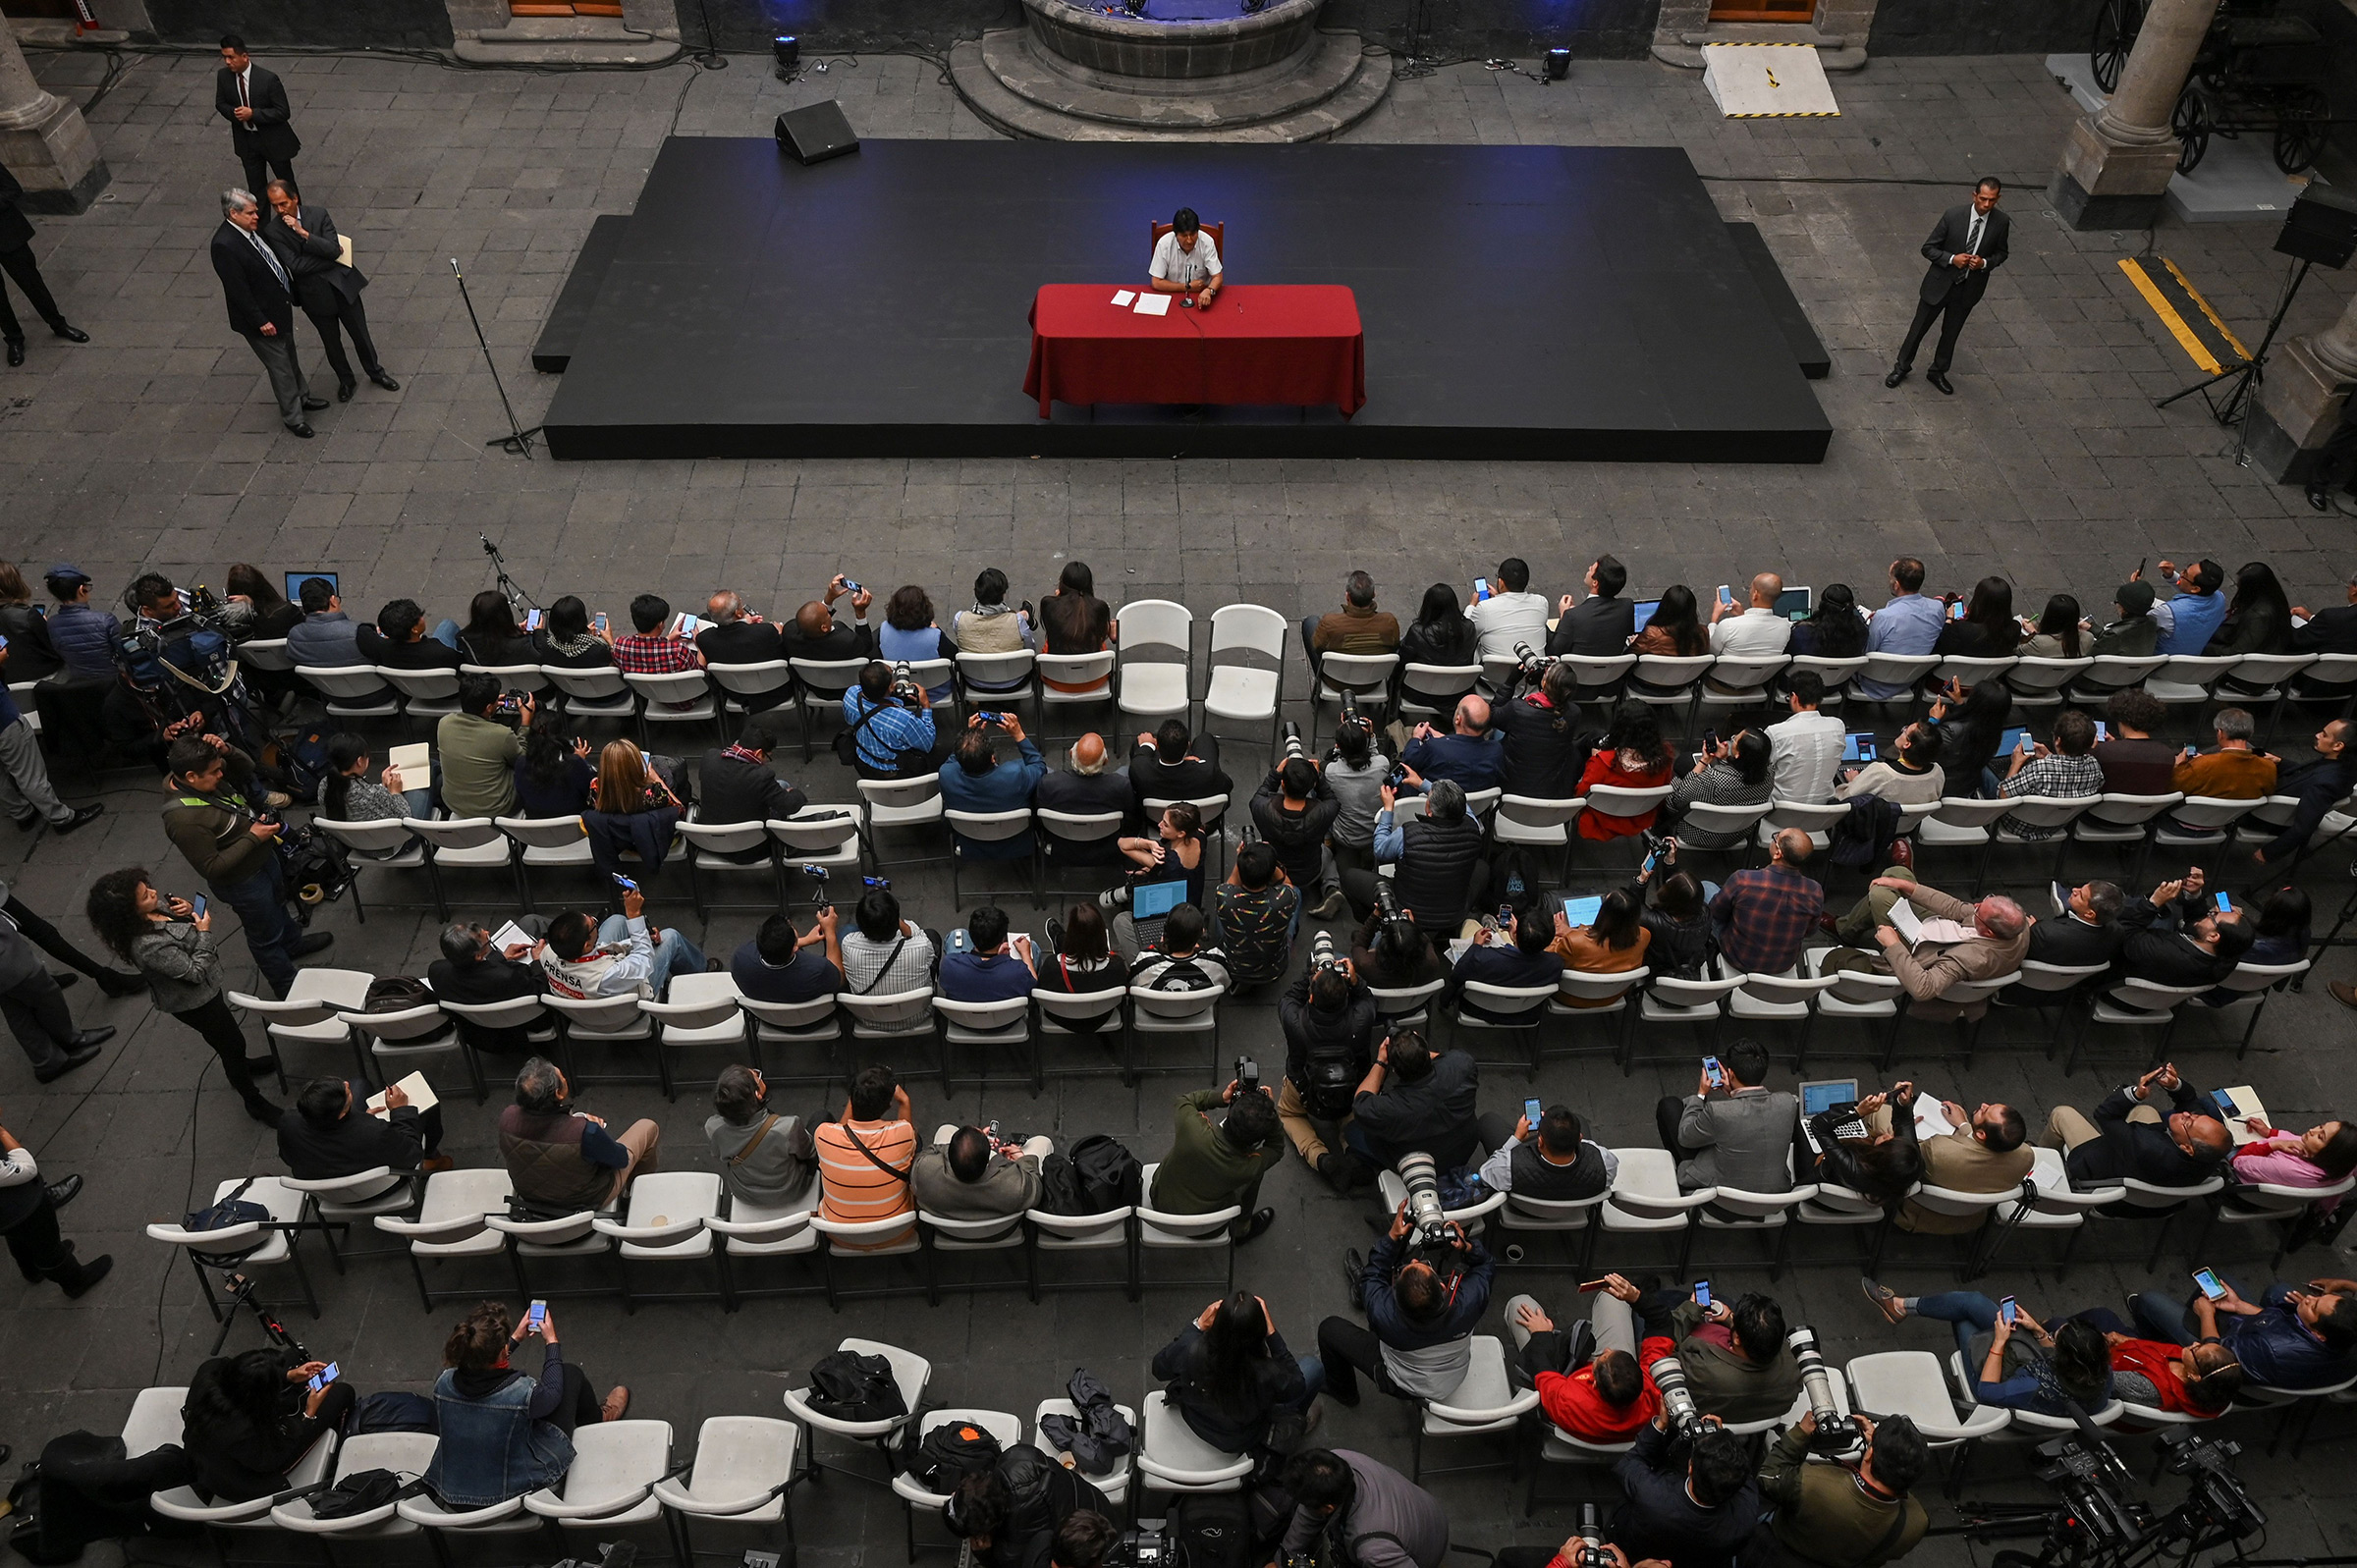 Bolivian ex-President Evo Morales speaks during a press conference at the Museum of the City of Mexico on Nov. 13, 2019.